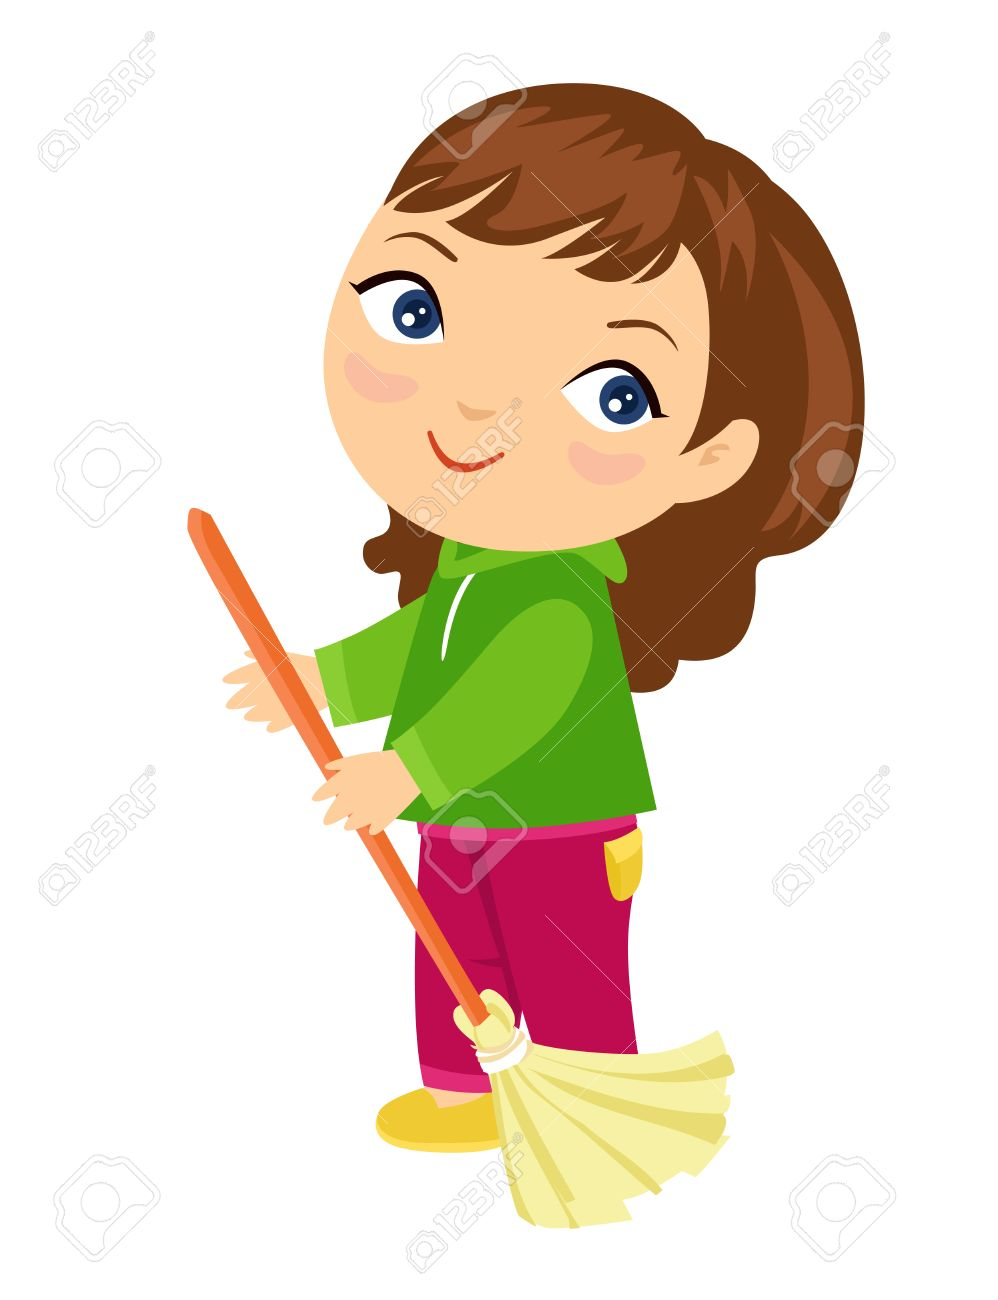 Child sweeping the floor clipart 1 » Clipart Station.